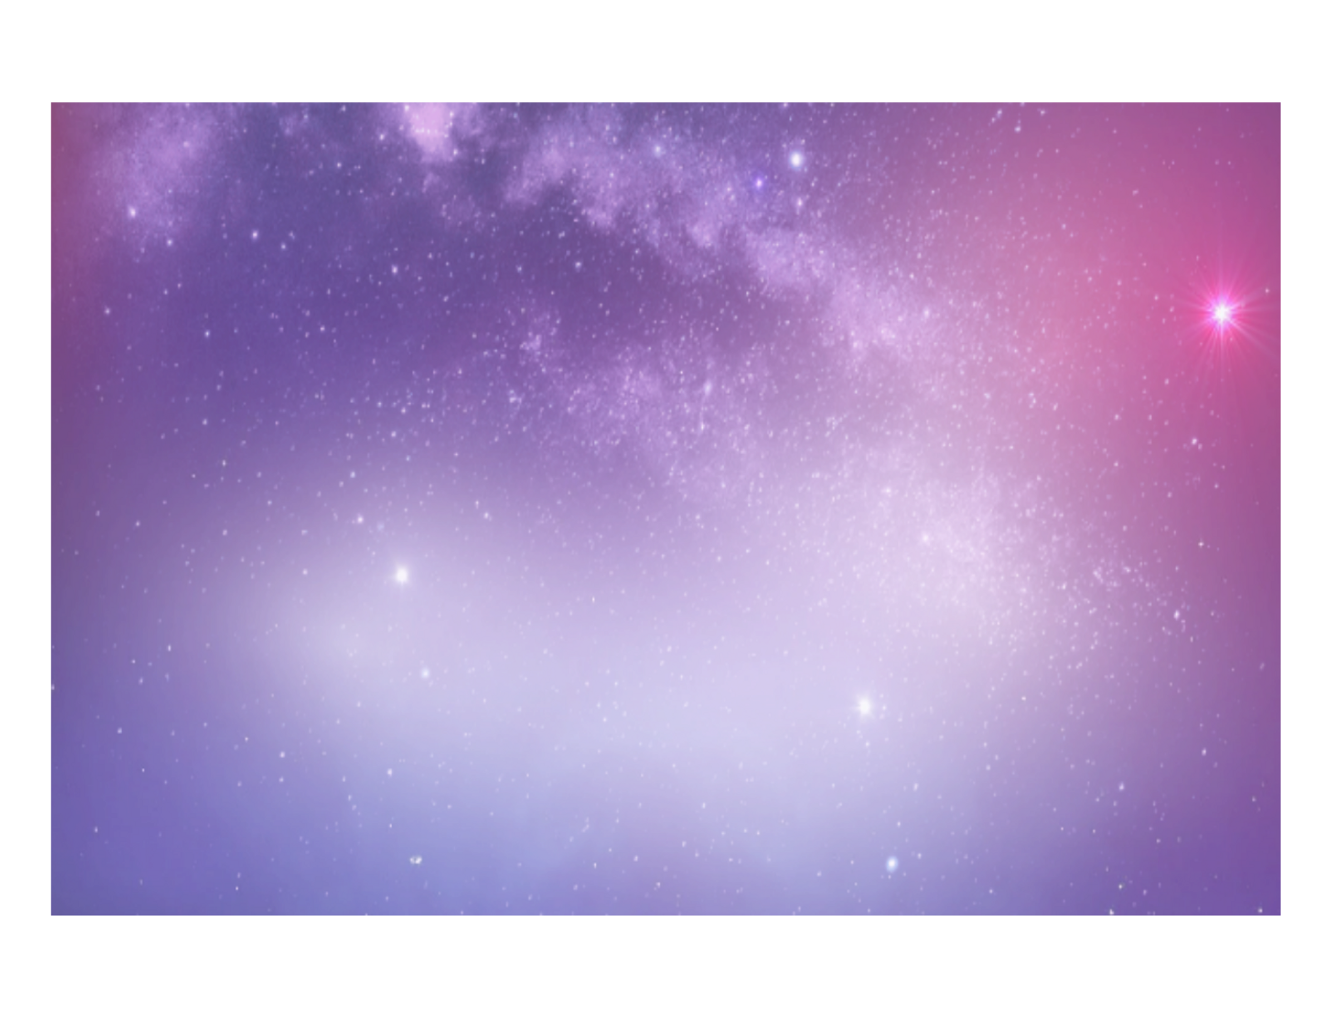 Galaxy star clipart vector free ftestickers background galaxy star pastel purple... vector free